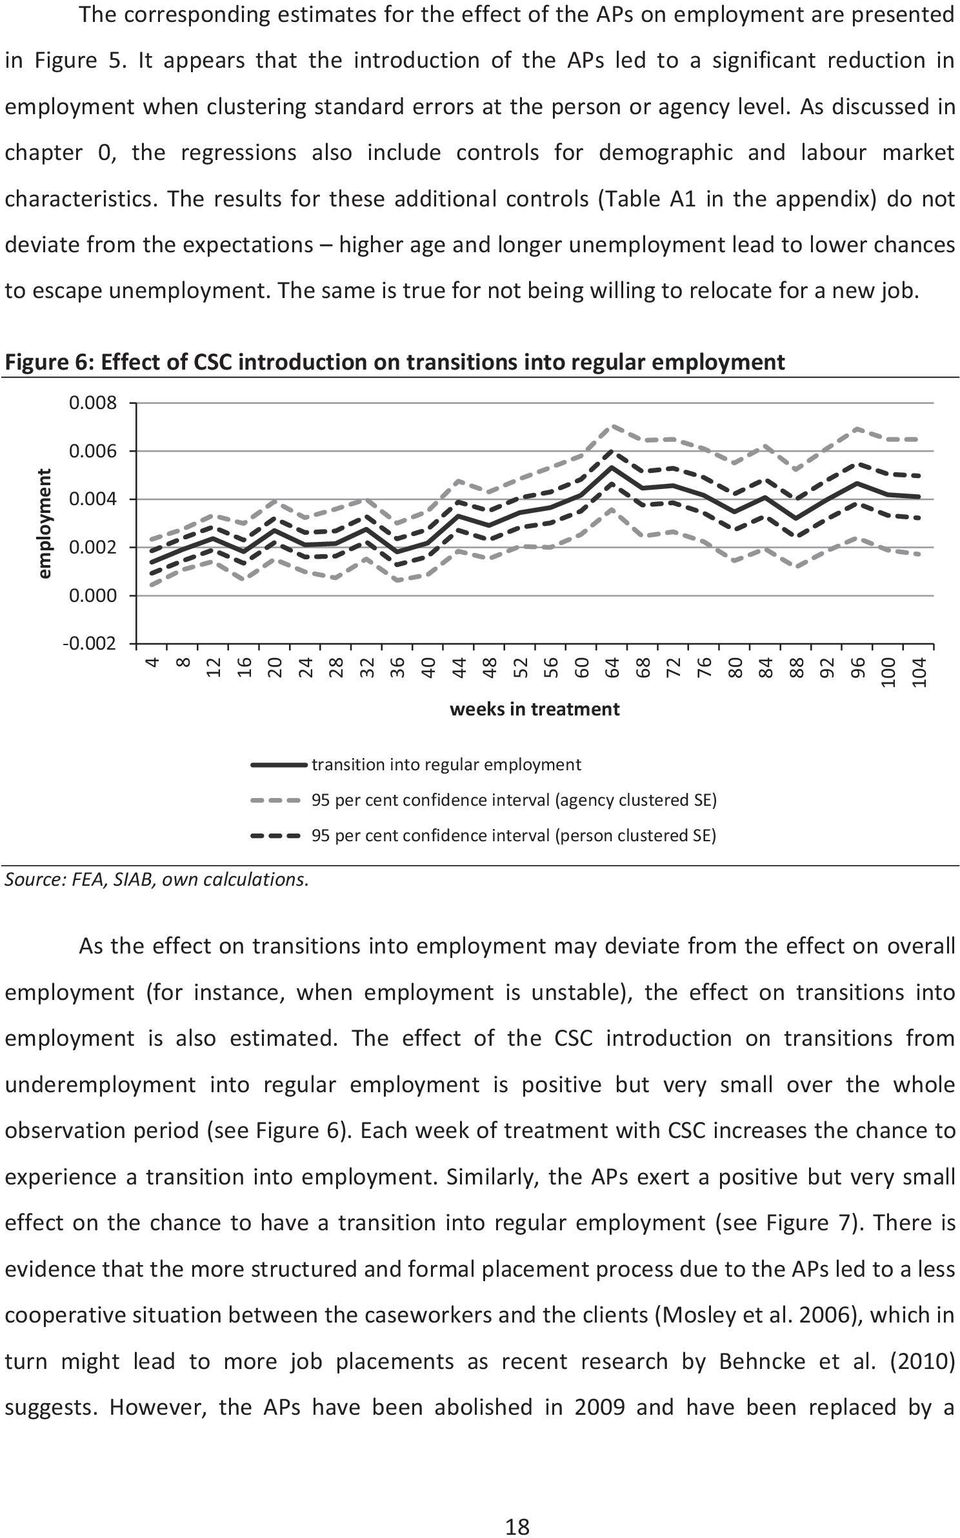 As discussed in chapter 0, the regressions also include controls for demographic and labour market characteristics.